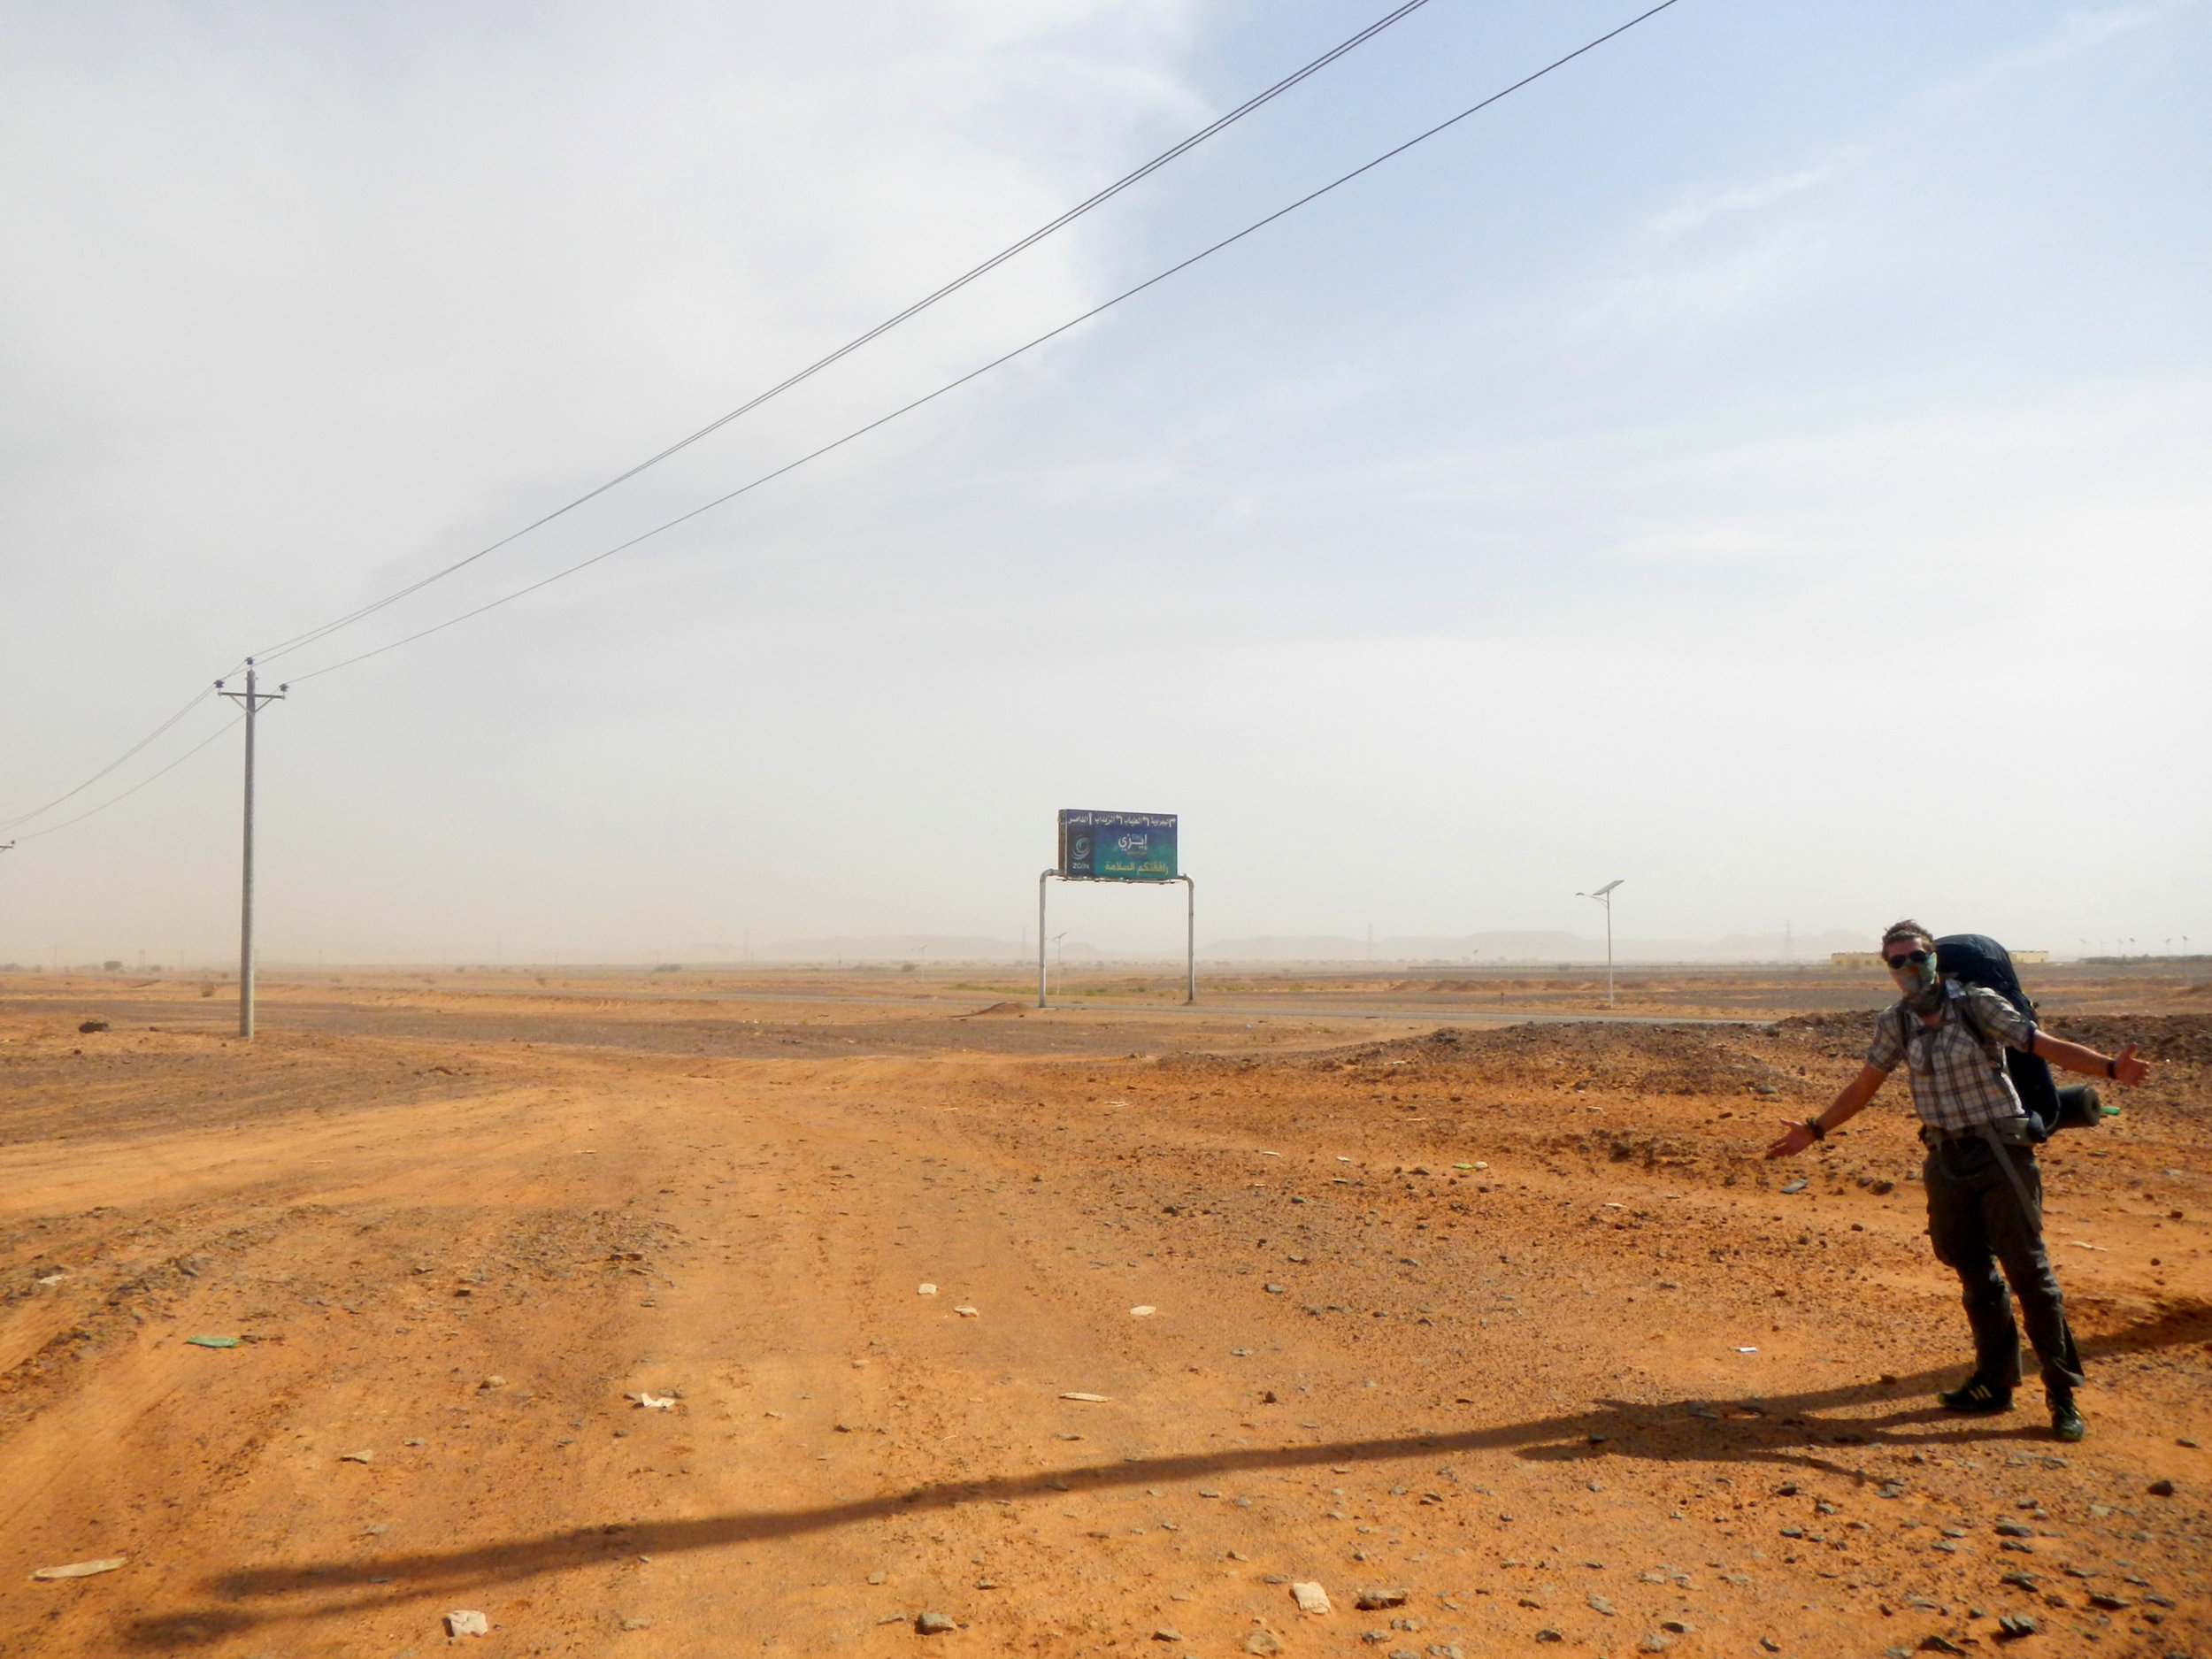 Our planned destination in the 'middle of nowhere' somewhere north of Khartoum…